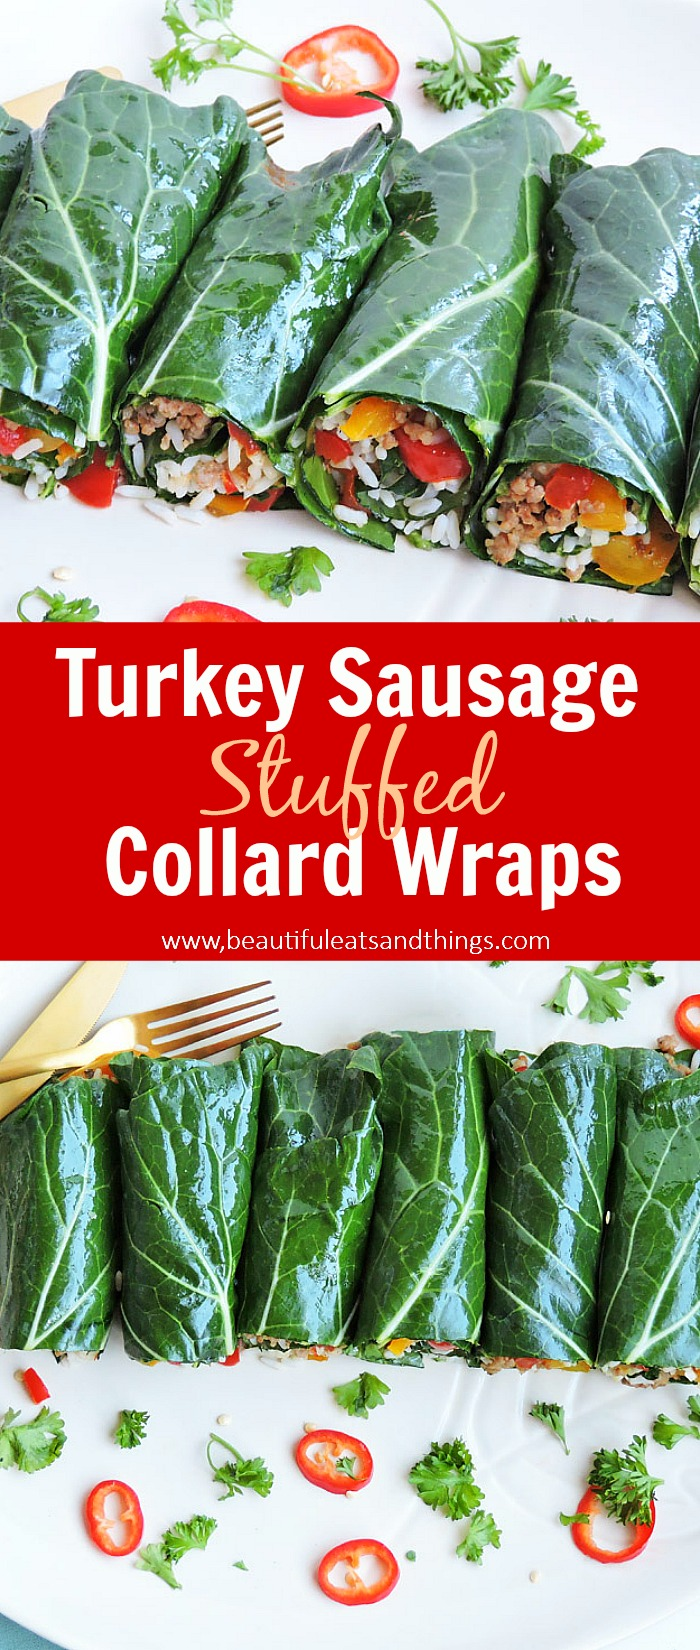 Turkey Sausage Stuffed Collard Green Wraps with rice and yellow and red bell peppers, on a white plate with slice red peppers Pinterest